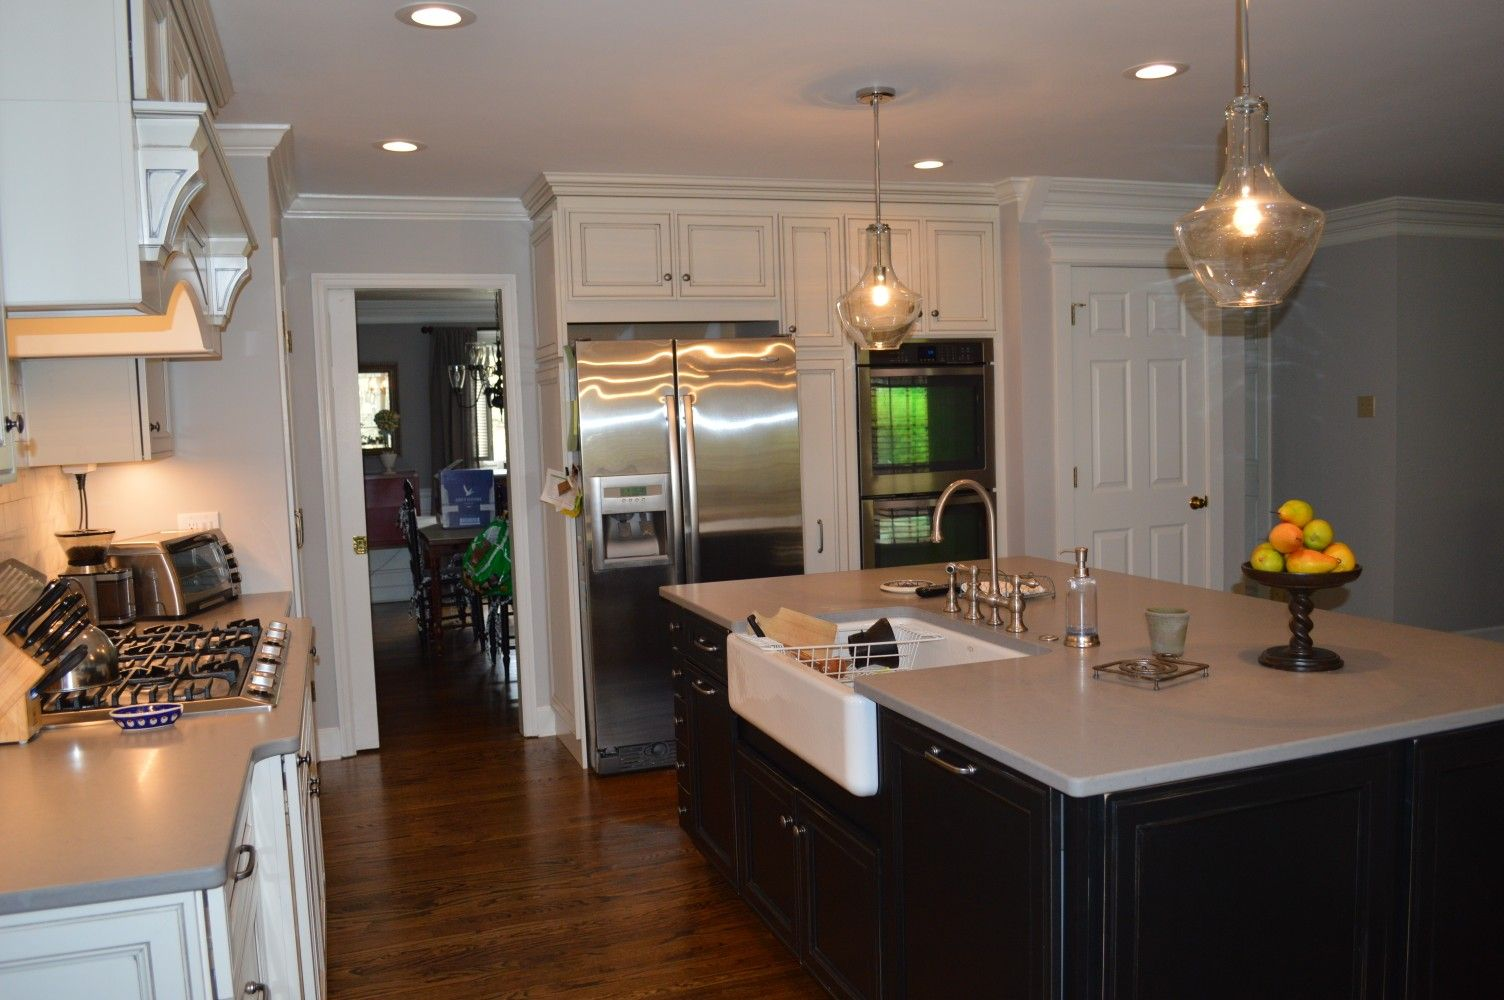 Kitchen Sales Was Proud To Be A Part Of This Beautiful Kitchen Remodel Installing Kemper Warwick Coconut Grey S Kitchen Sale Beautiful Kitchens Kitchen Remodel